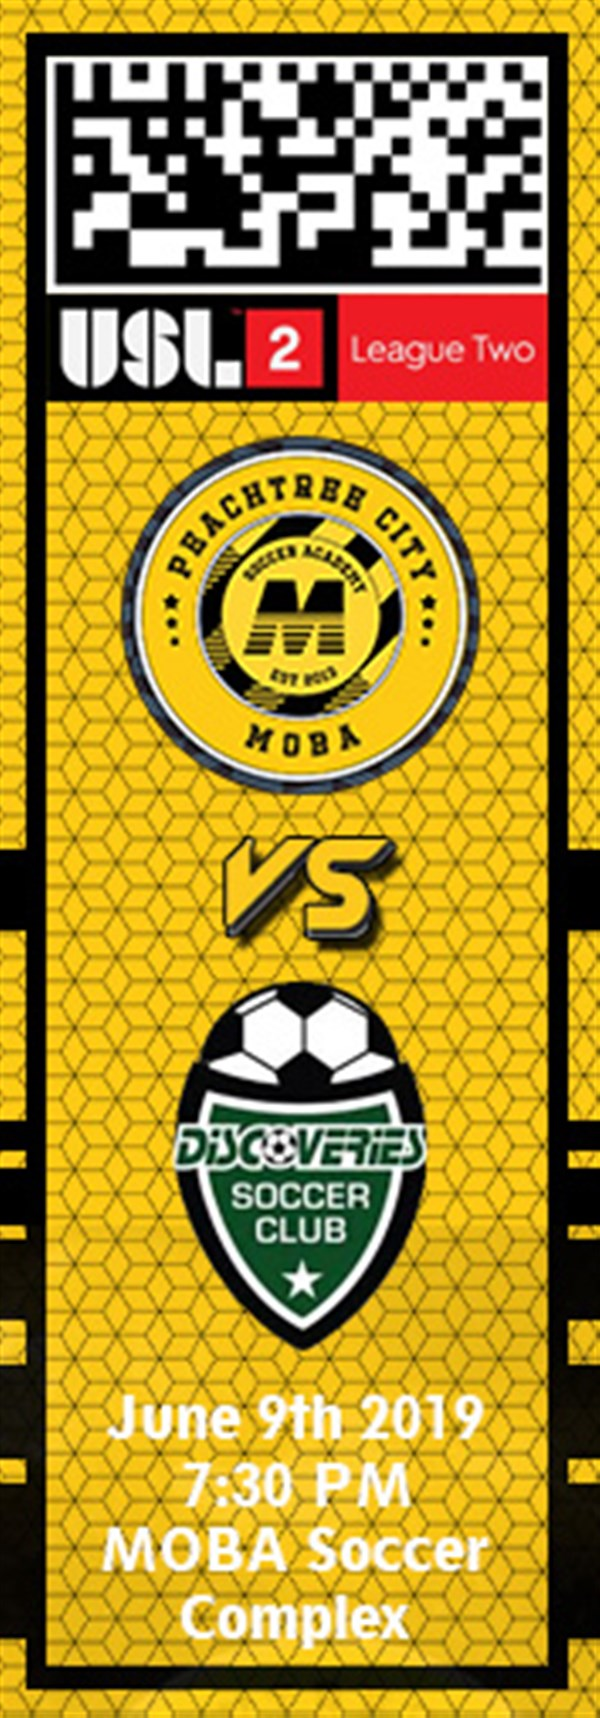 Get Information and buy tickets to PTC MOBA vs. Discoveries USL2 on MOBA Soccer Academy